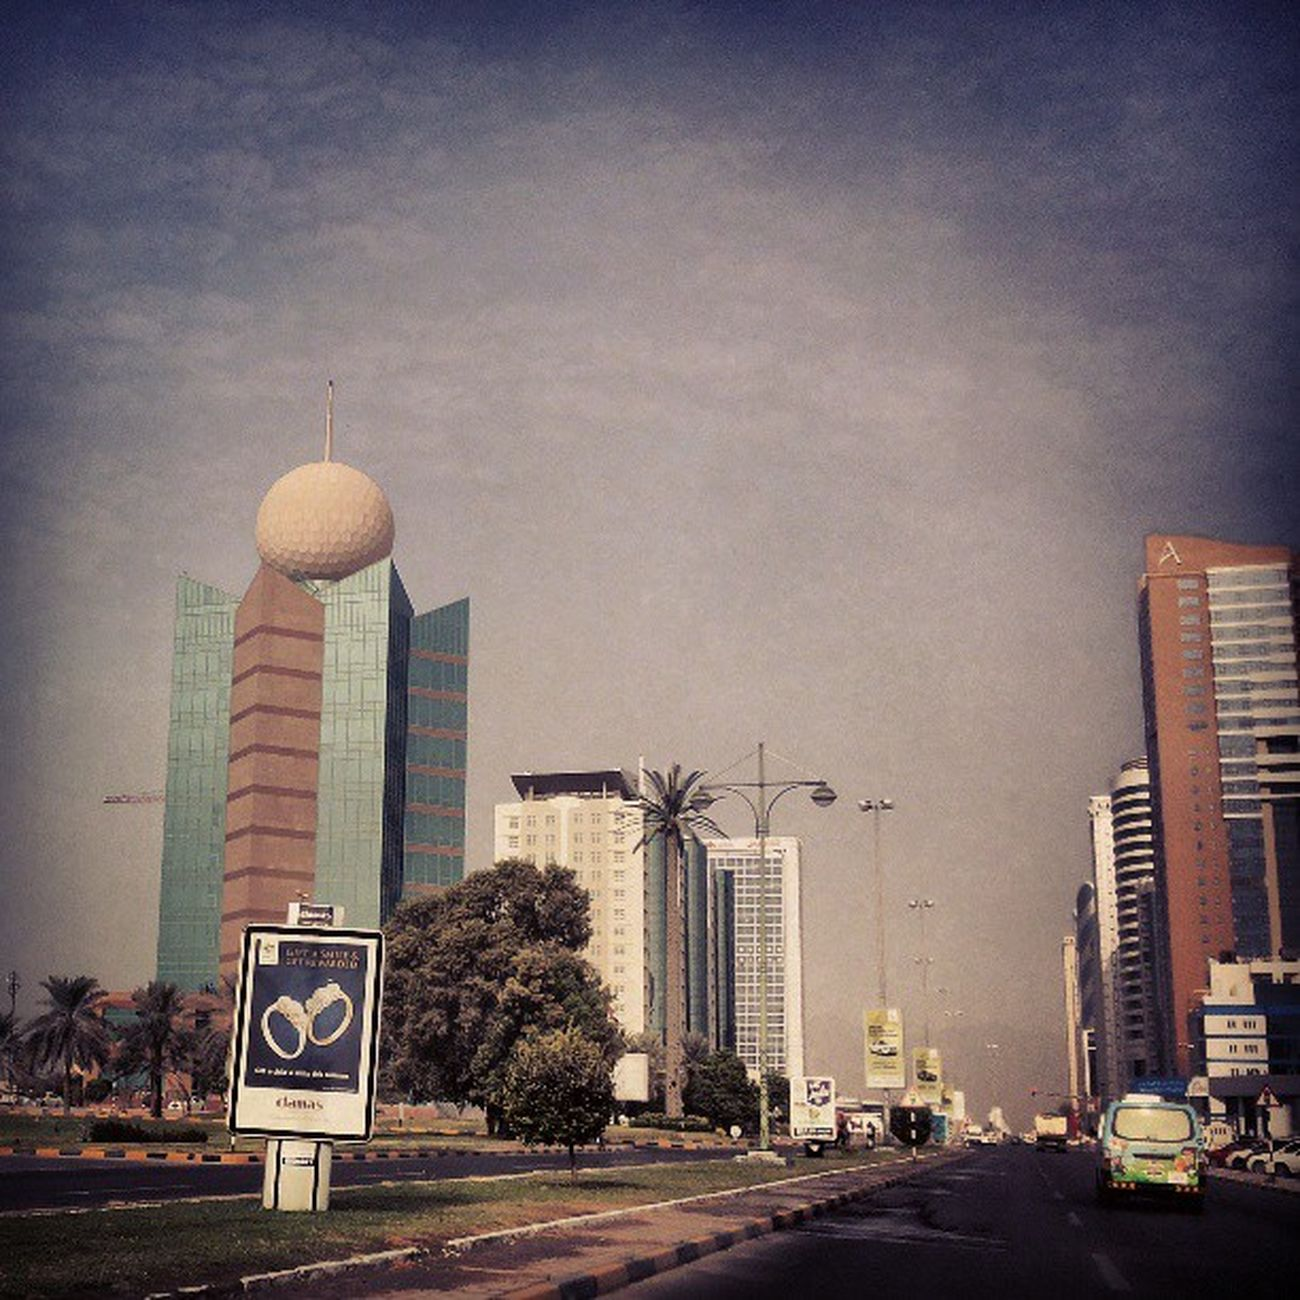 Fujairah Etisalat tower